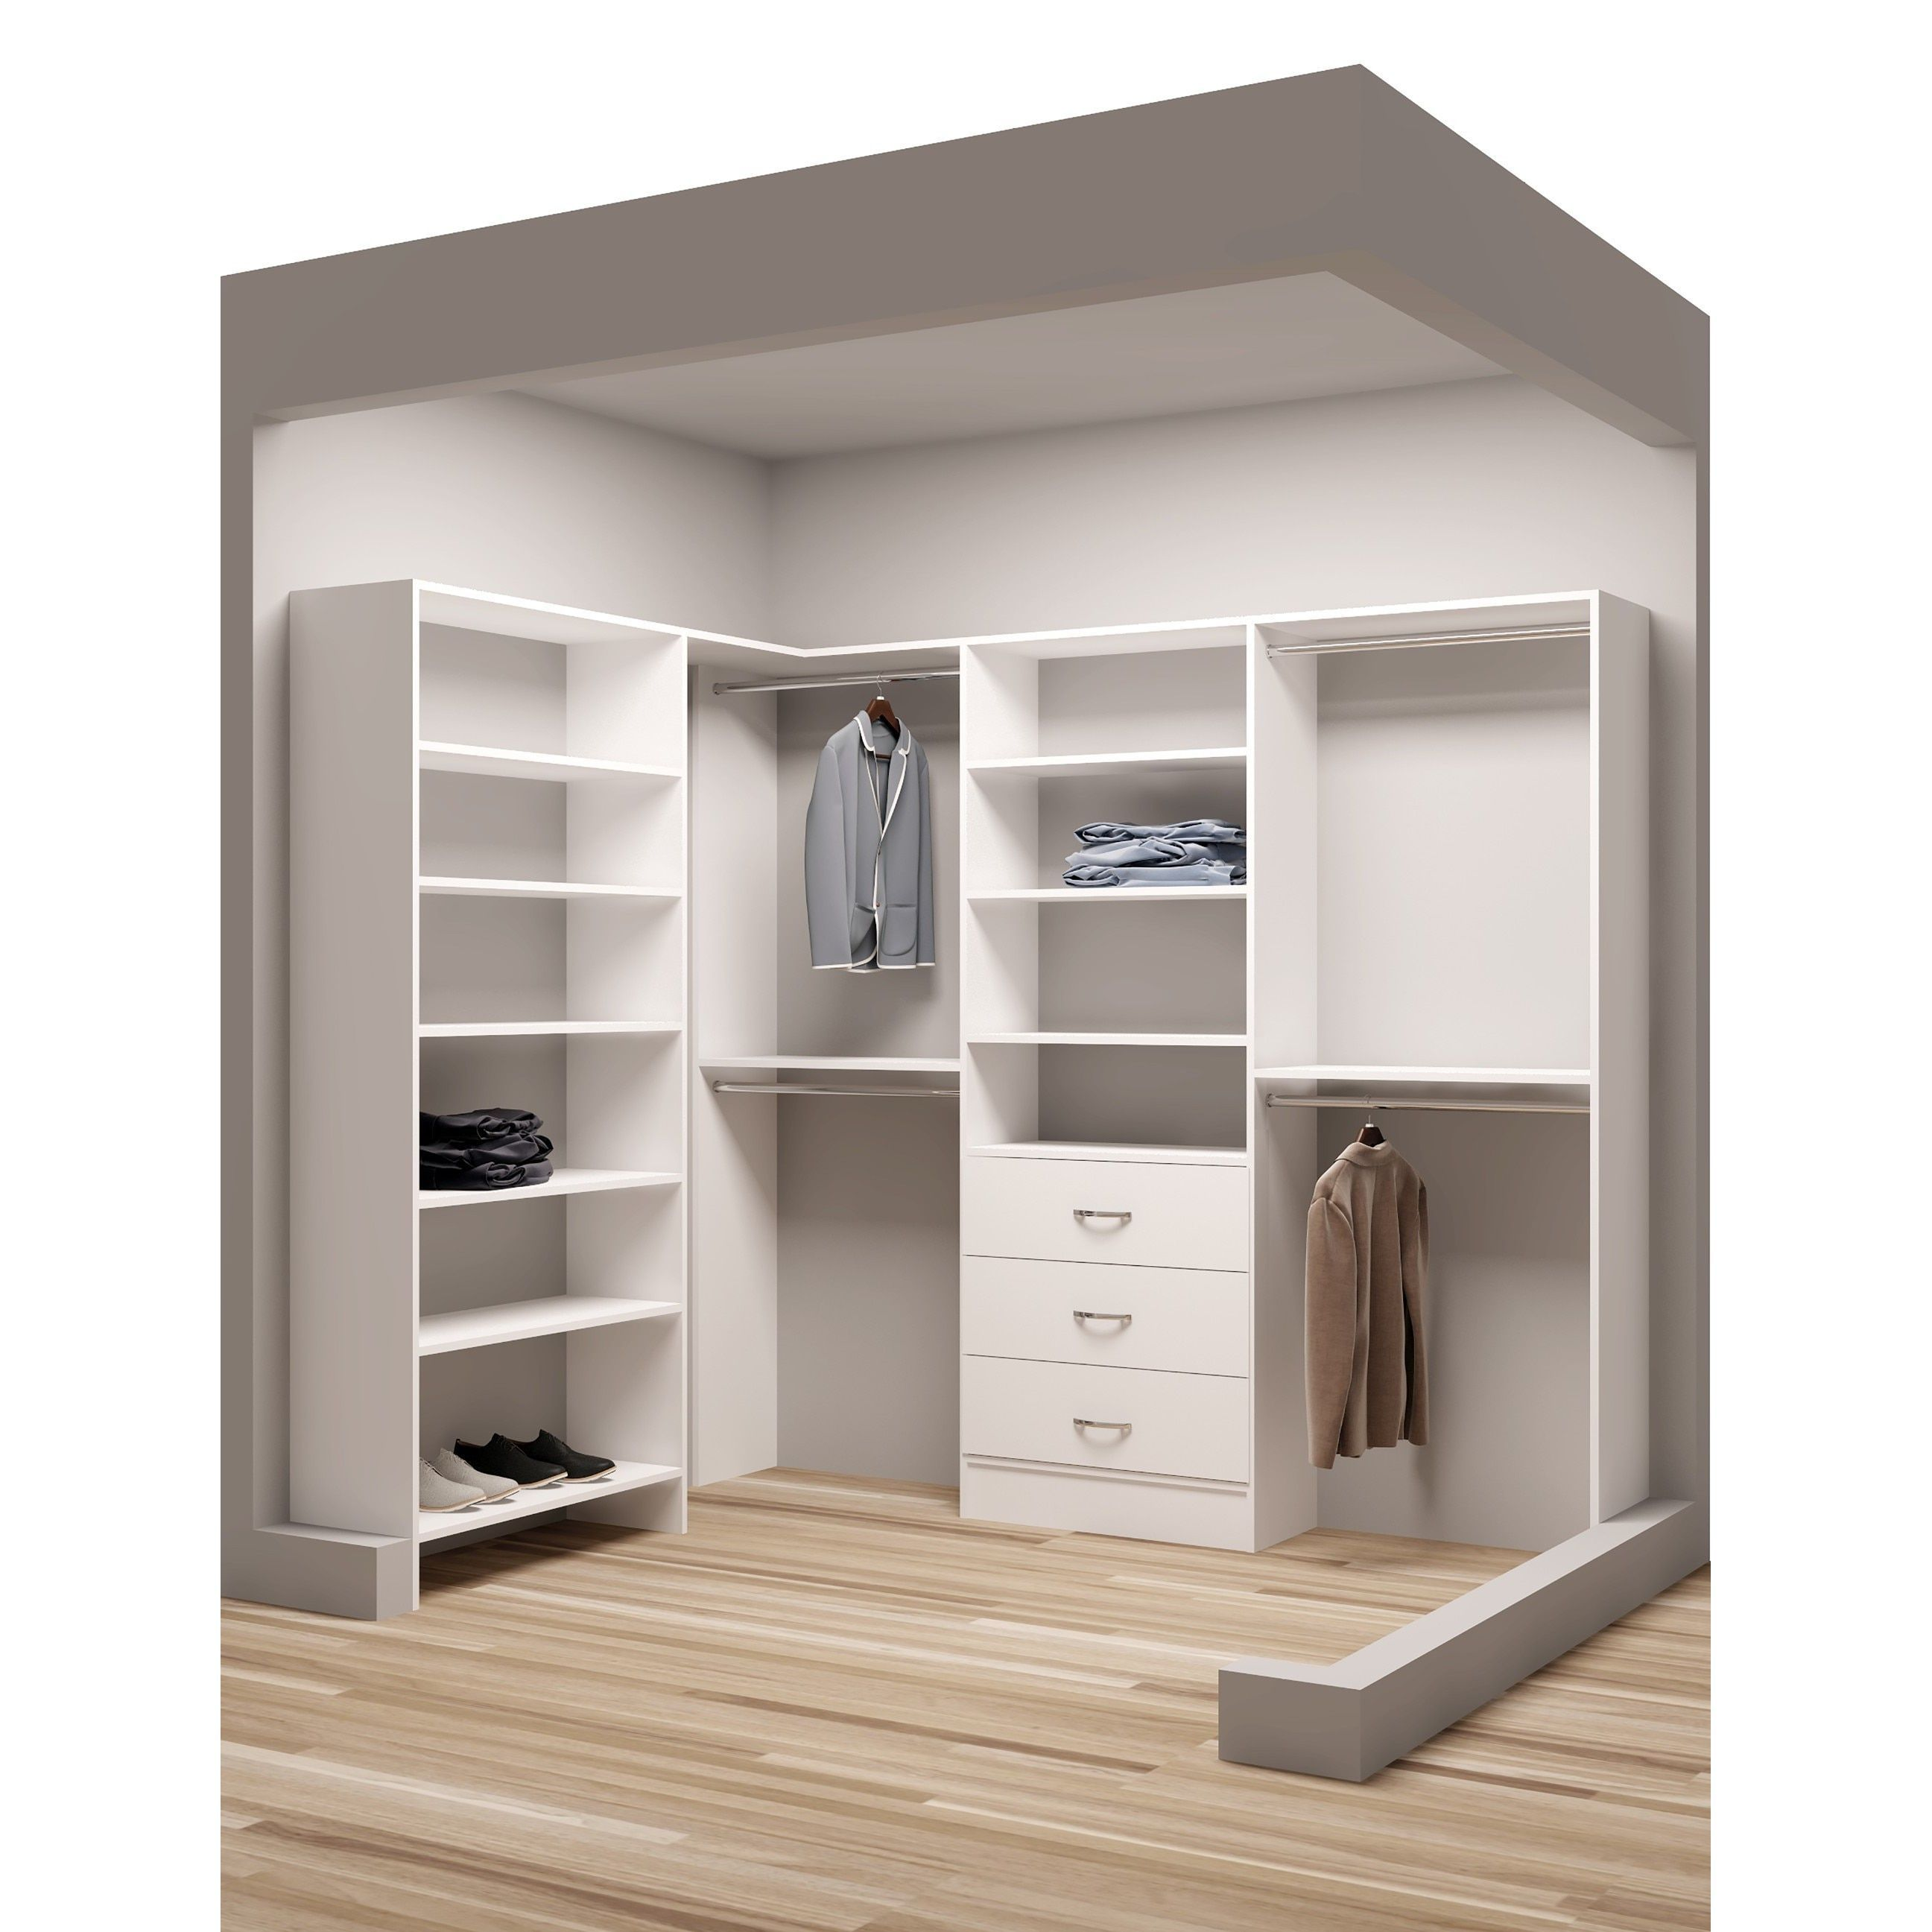 Make The Most Of Your Closet Space With The Classic White